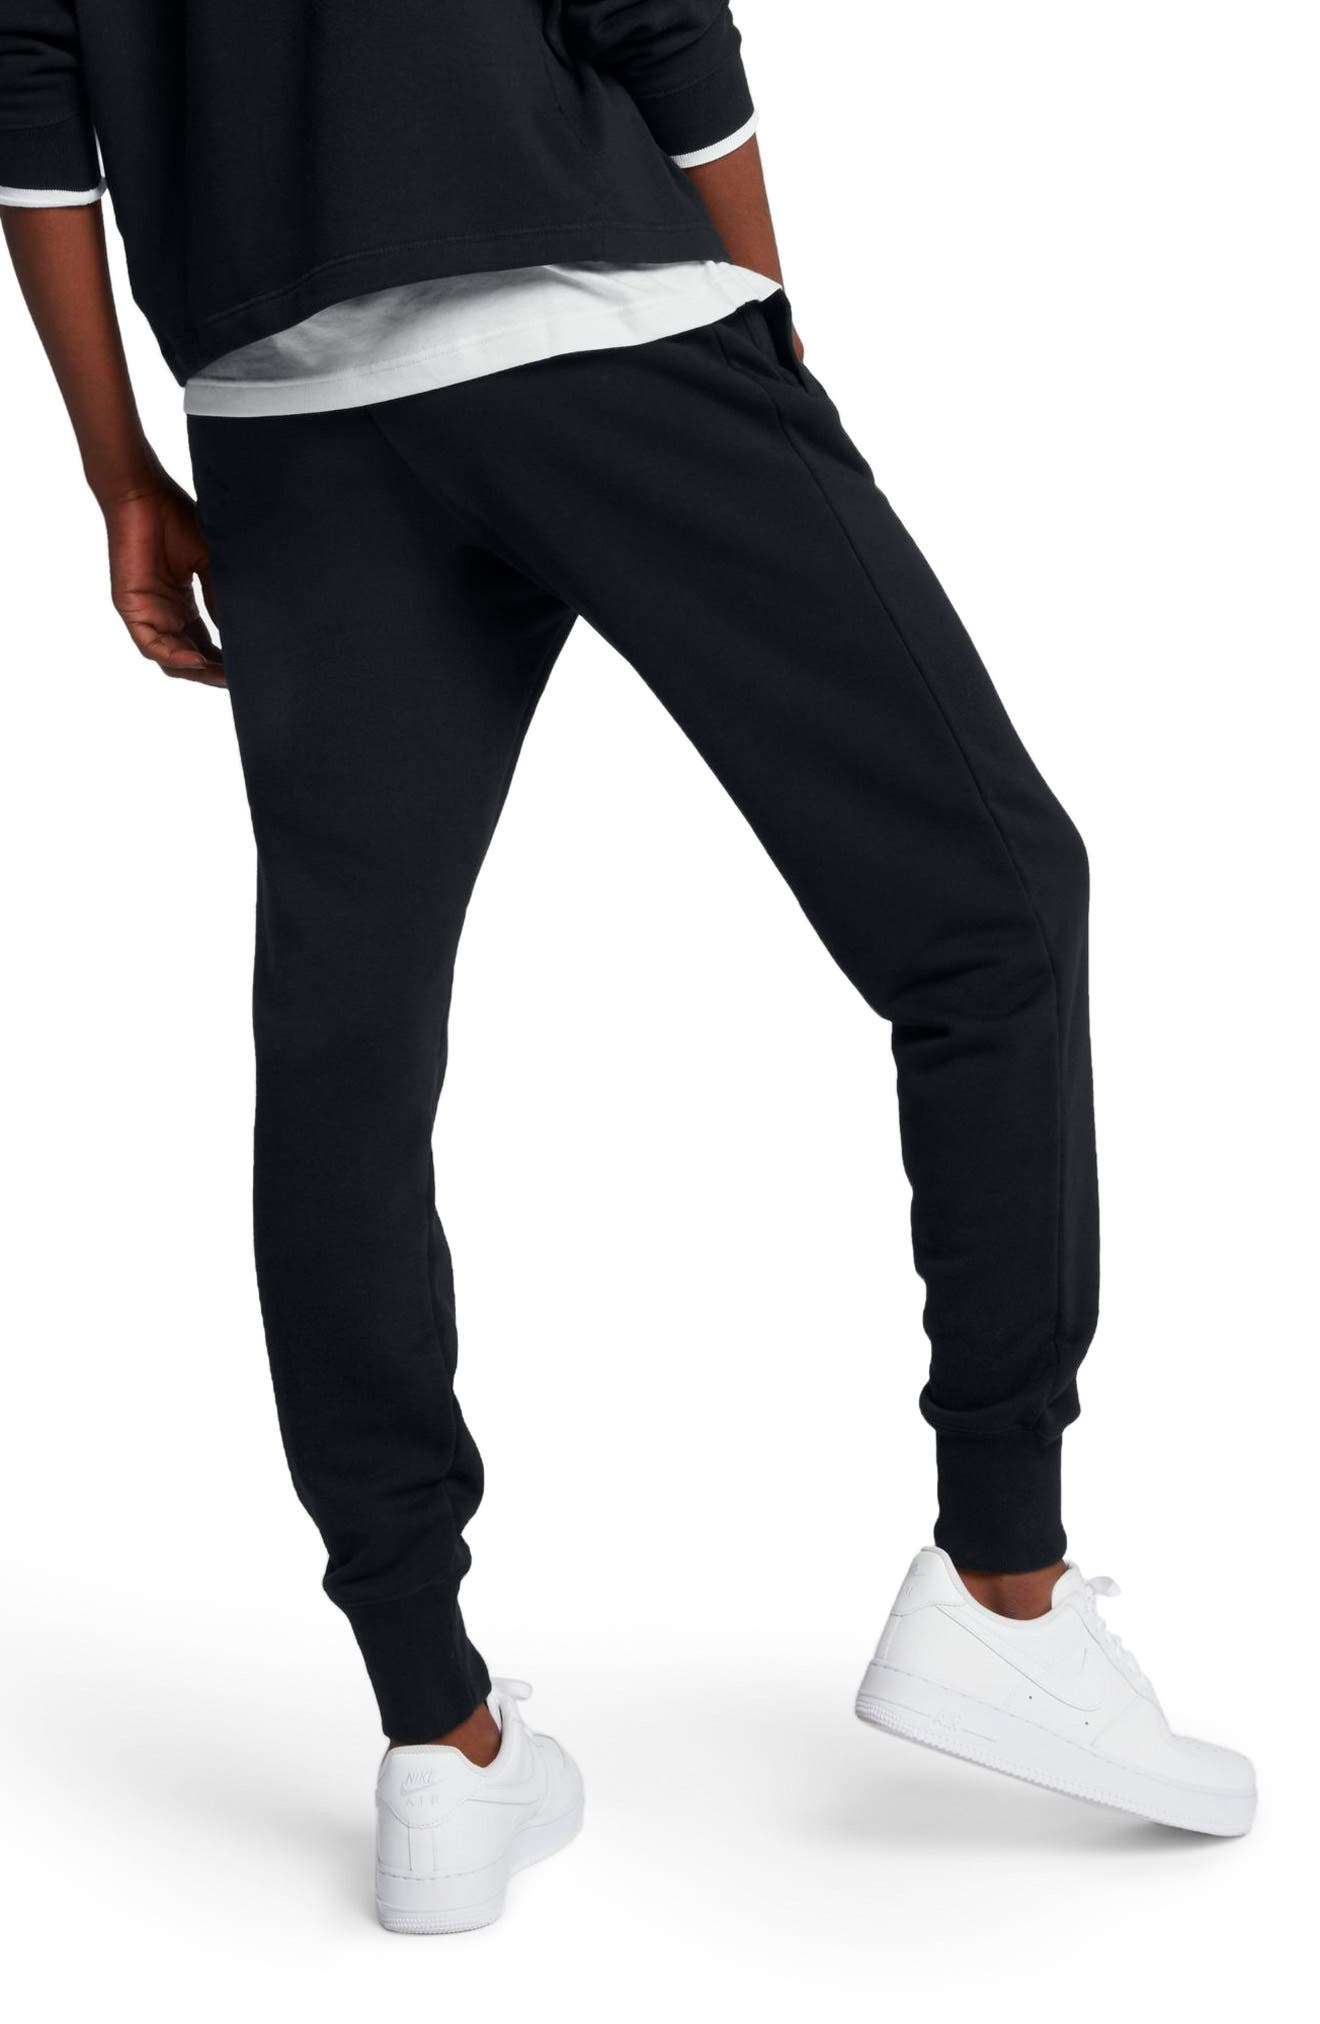 Sportswear Rally Fleece Pants,                             Alternate thumbnail 2, color,                             Black/ Black/ White